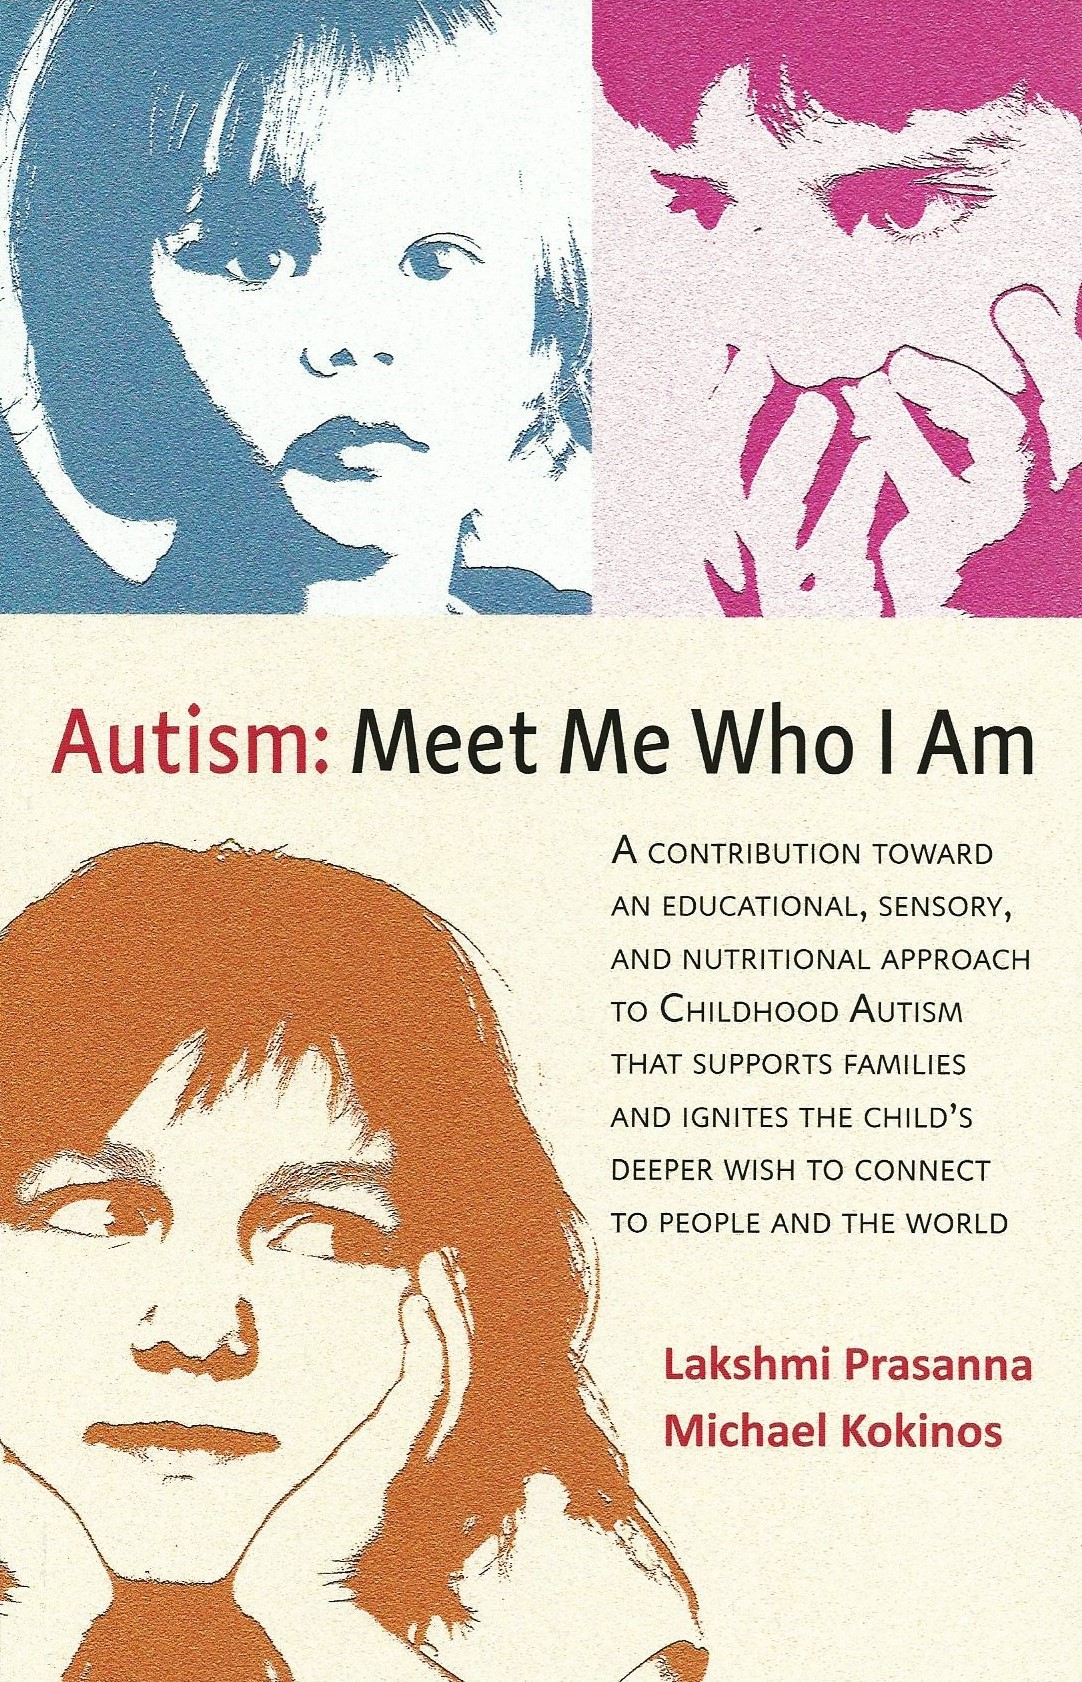 Autism: Meet Me Who I Am